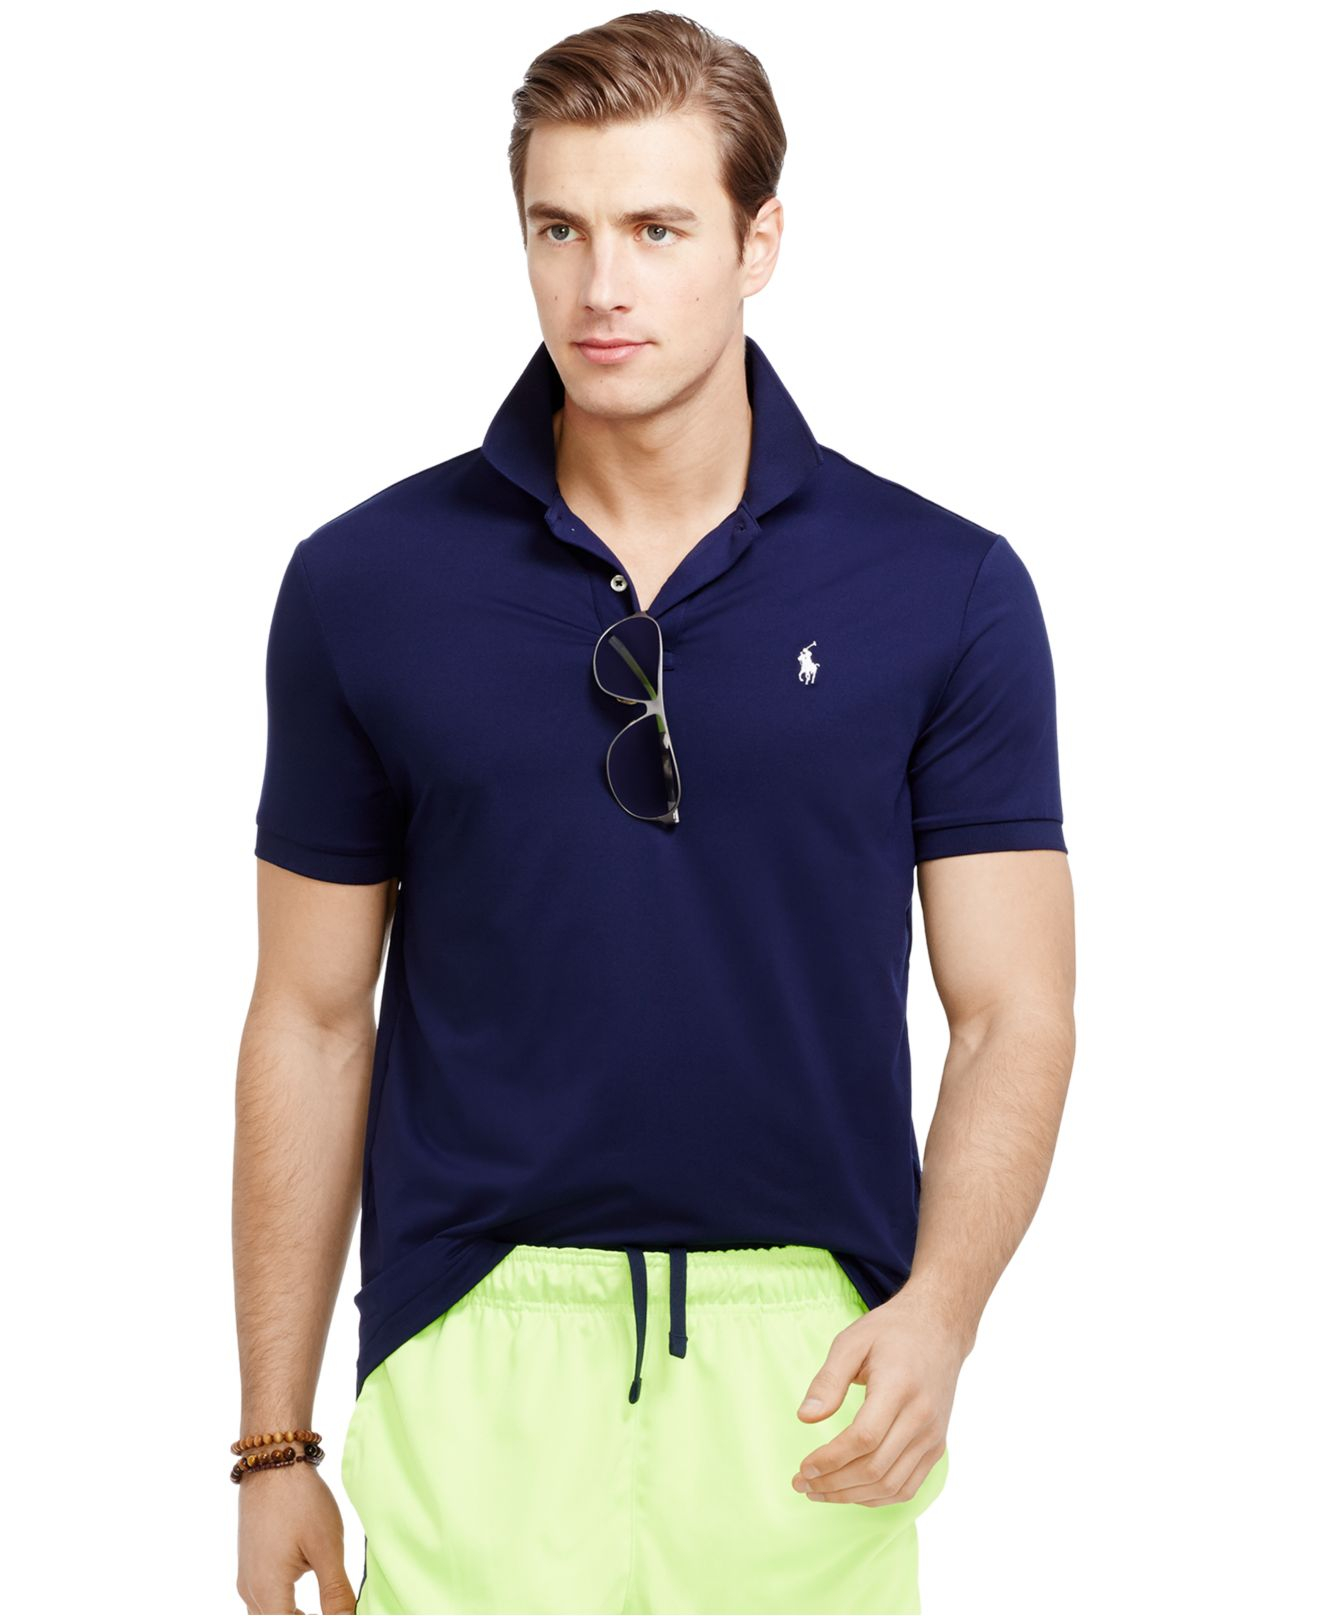 lyst polo ralph lauren performance polo shirt in blue for men. Black Bedroom Furniture Sets. Home Design Ideas